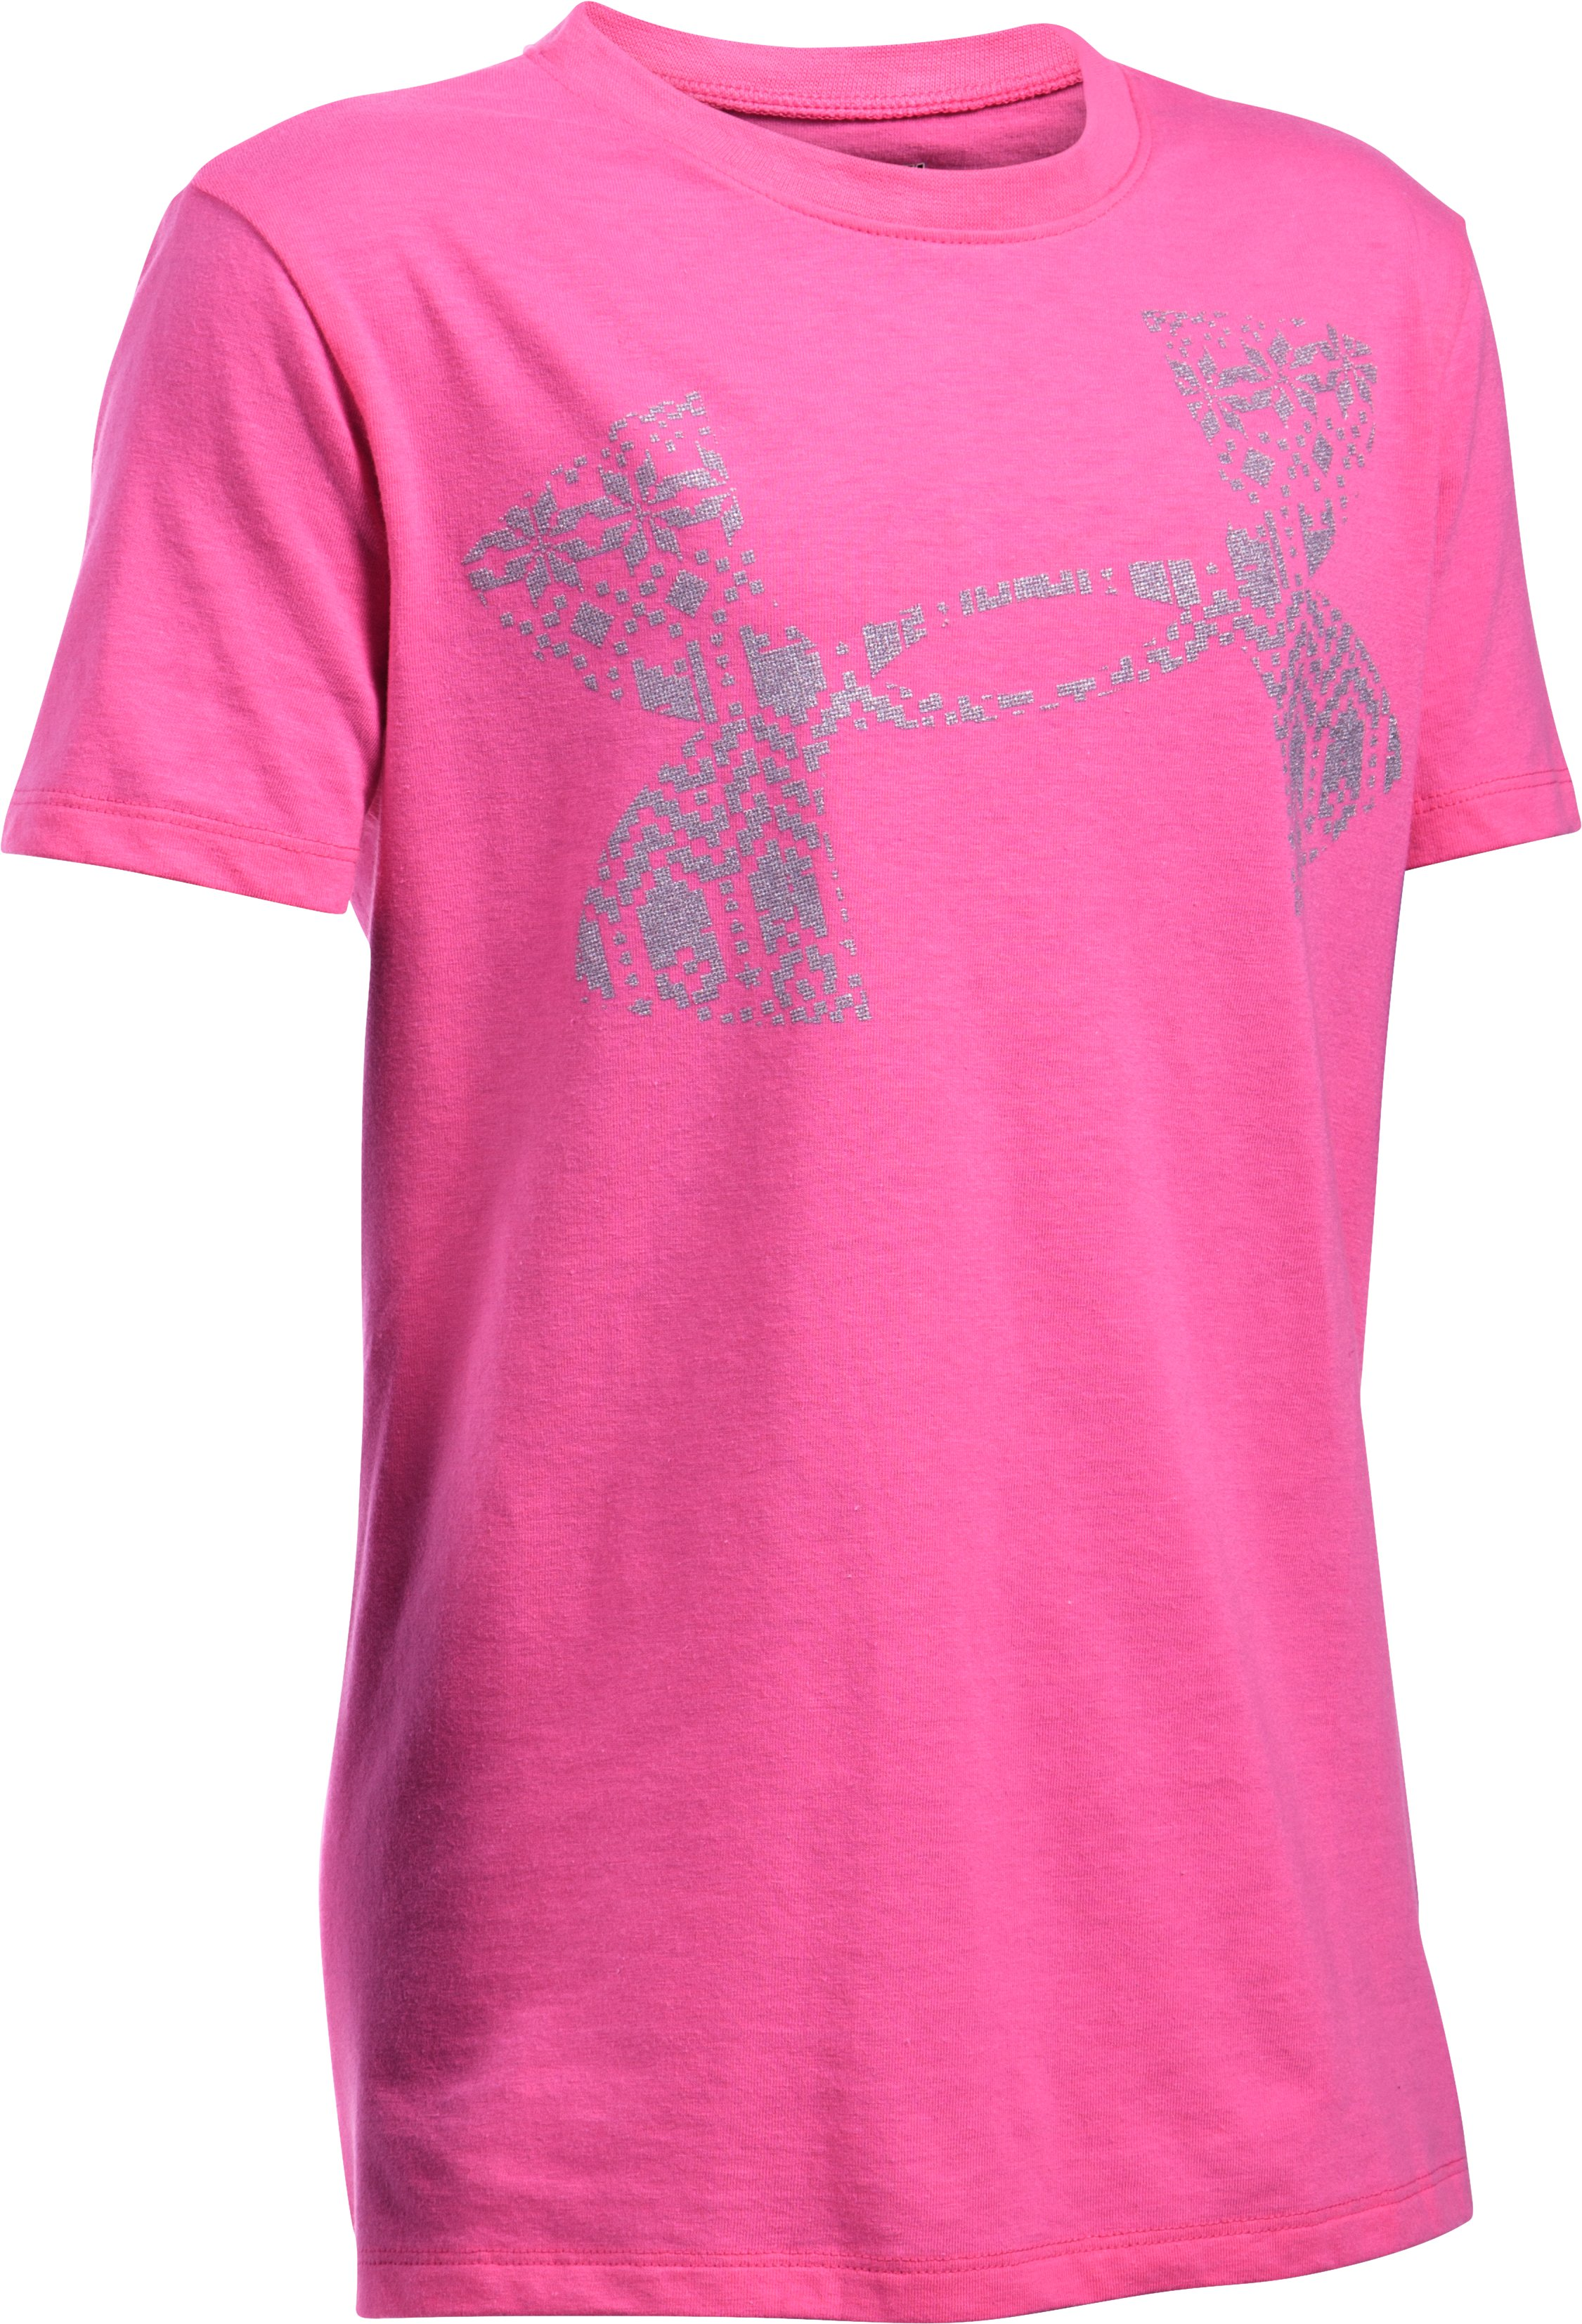 Girls' UA Holiday Logo T-Shirt, CHAOS, undefined